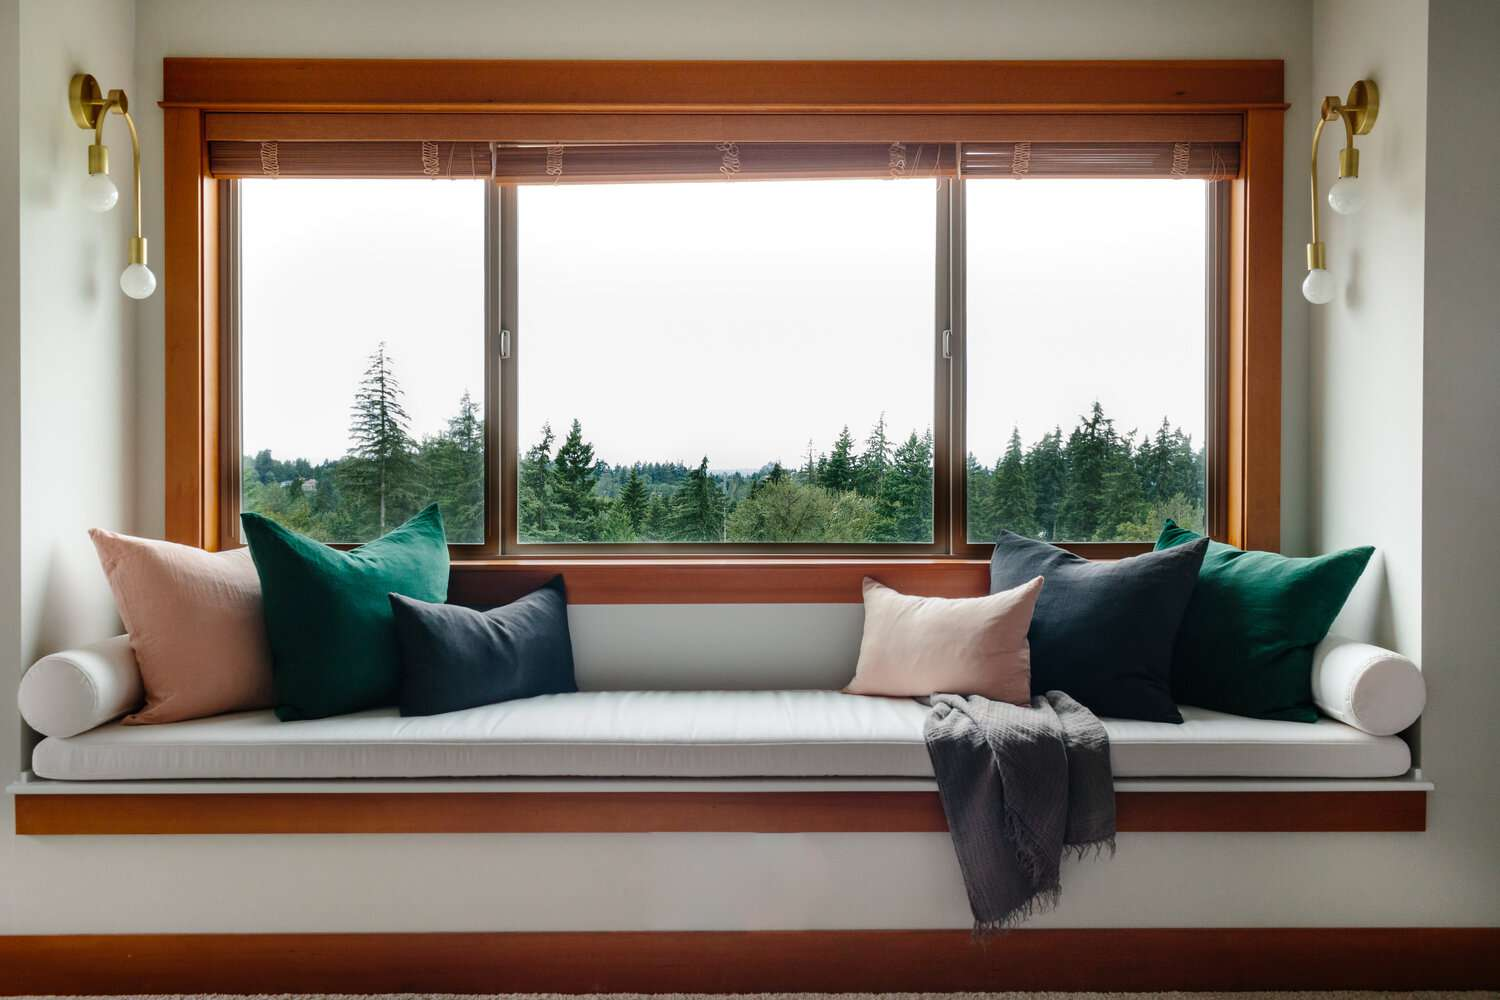 An upholstered window seat nook piled with throw pillows